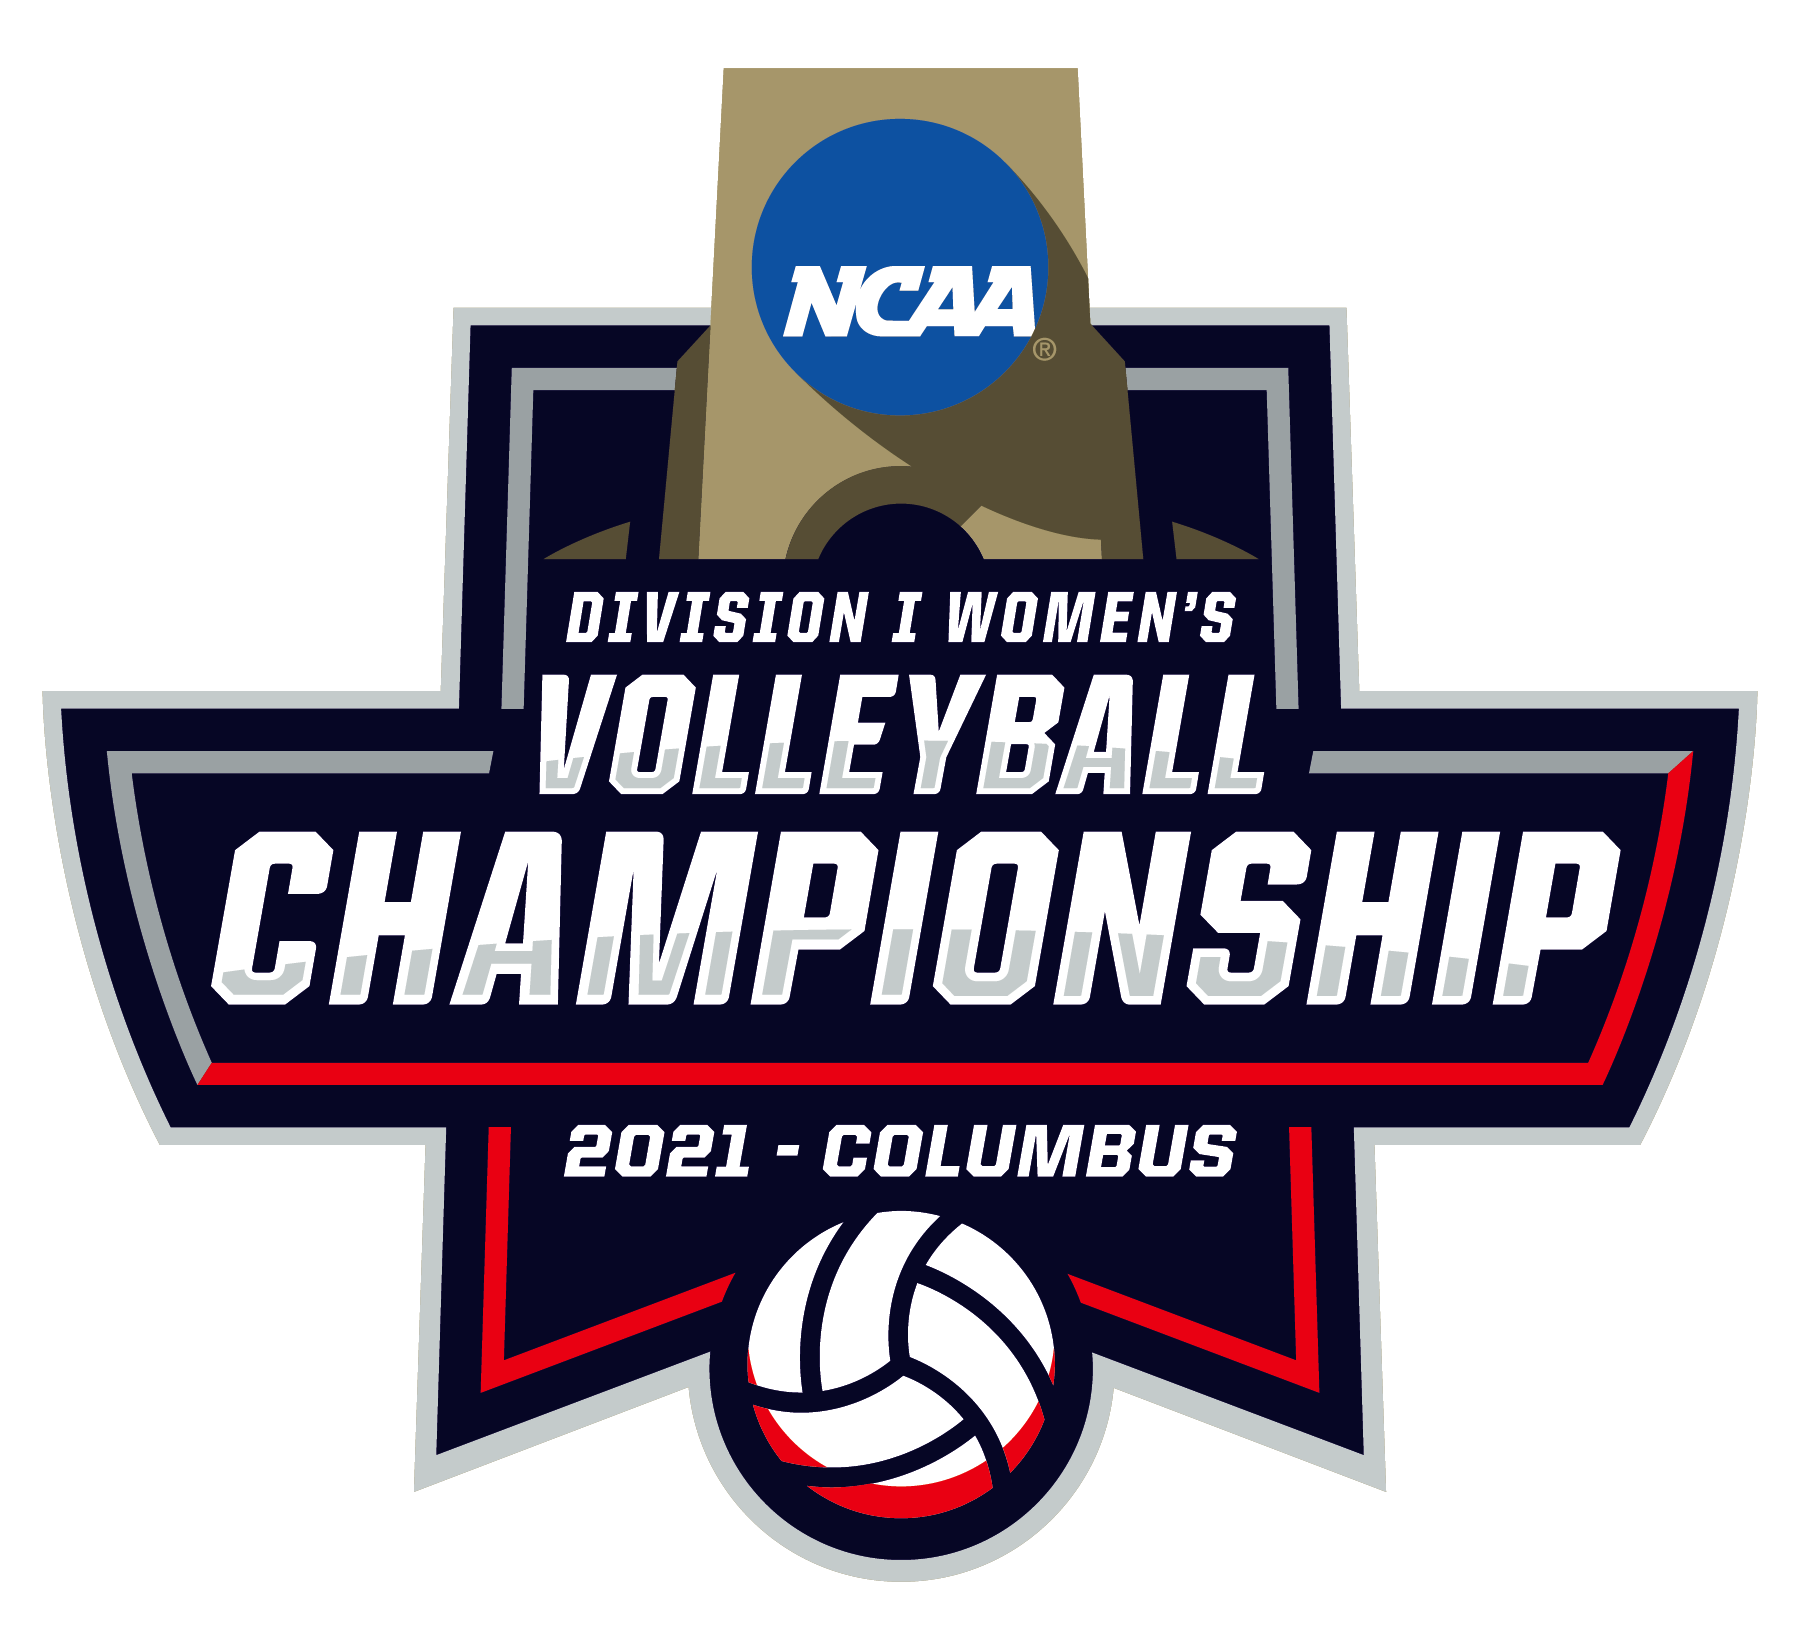 2021 Division I Women's Volleyball